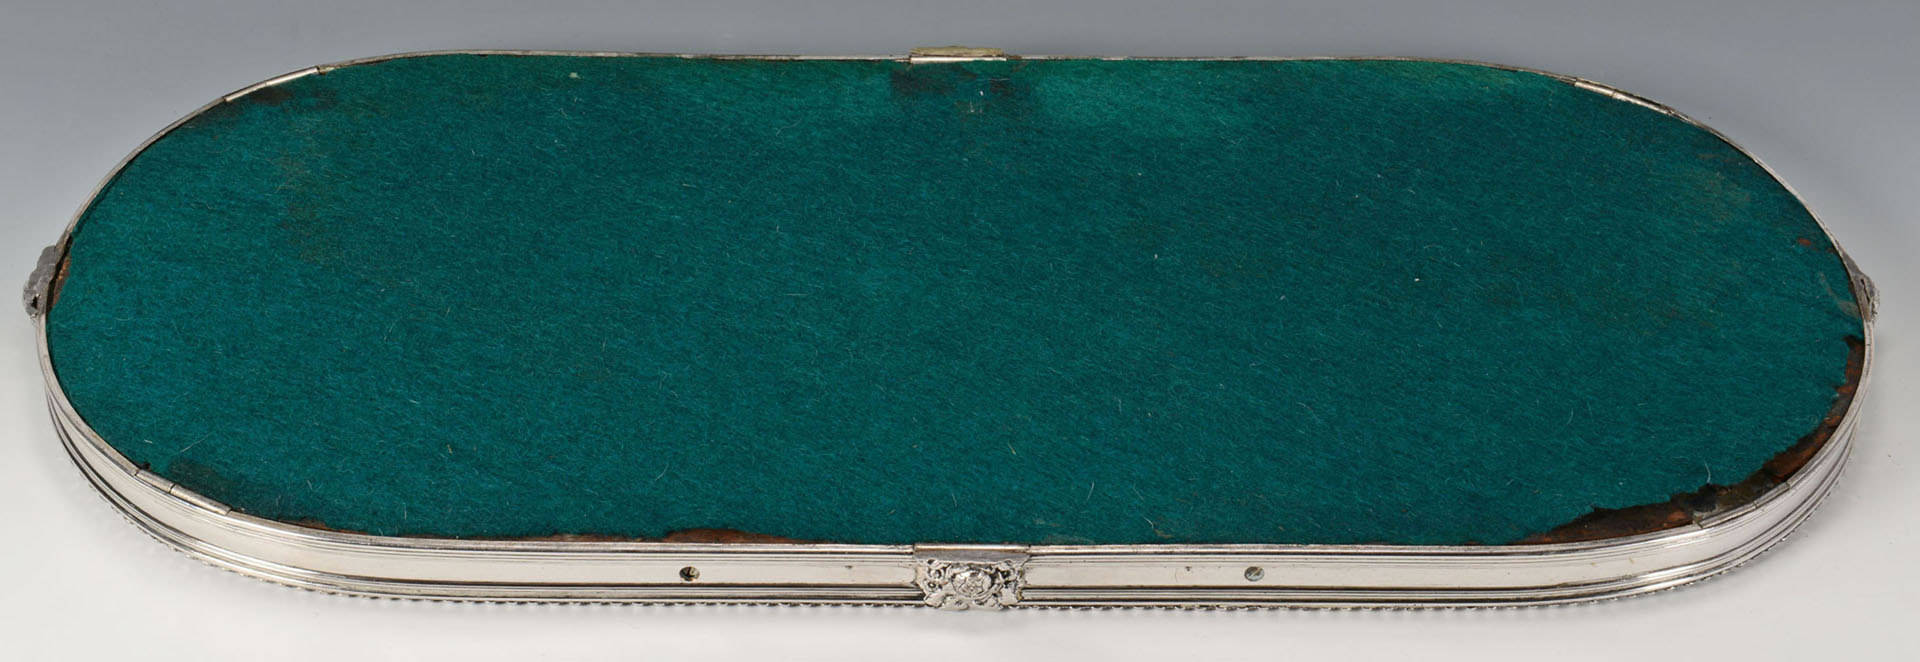 Lot 599: Large Victorian Mirrored Plateau